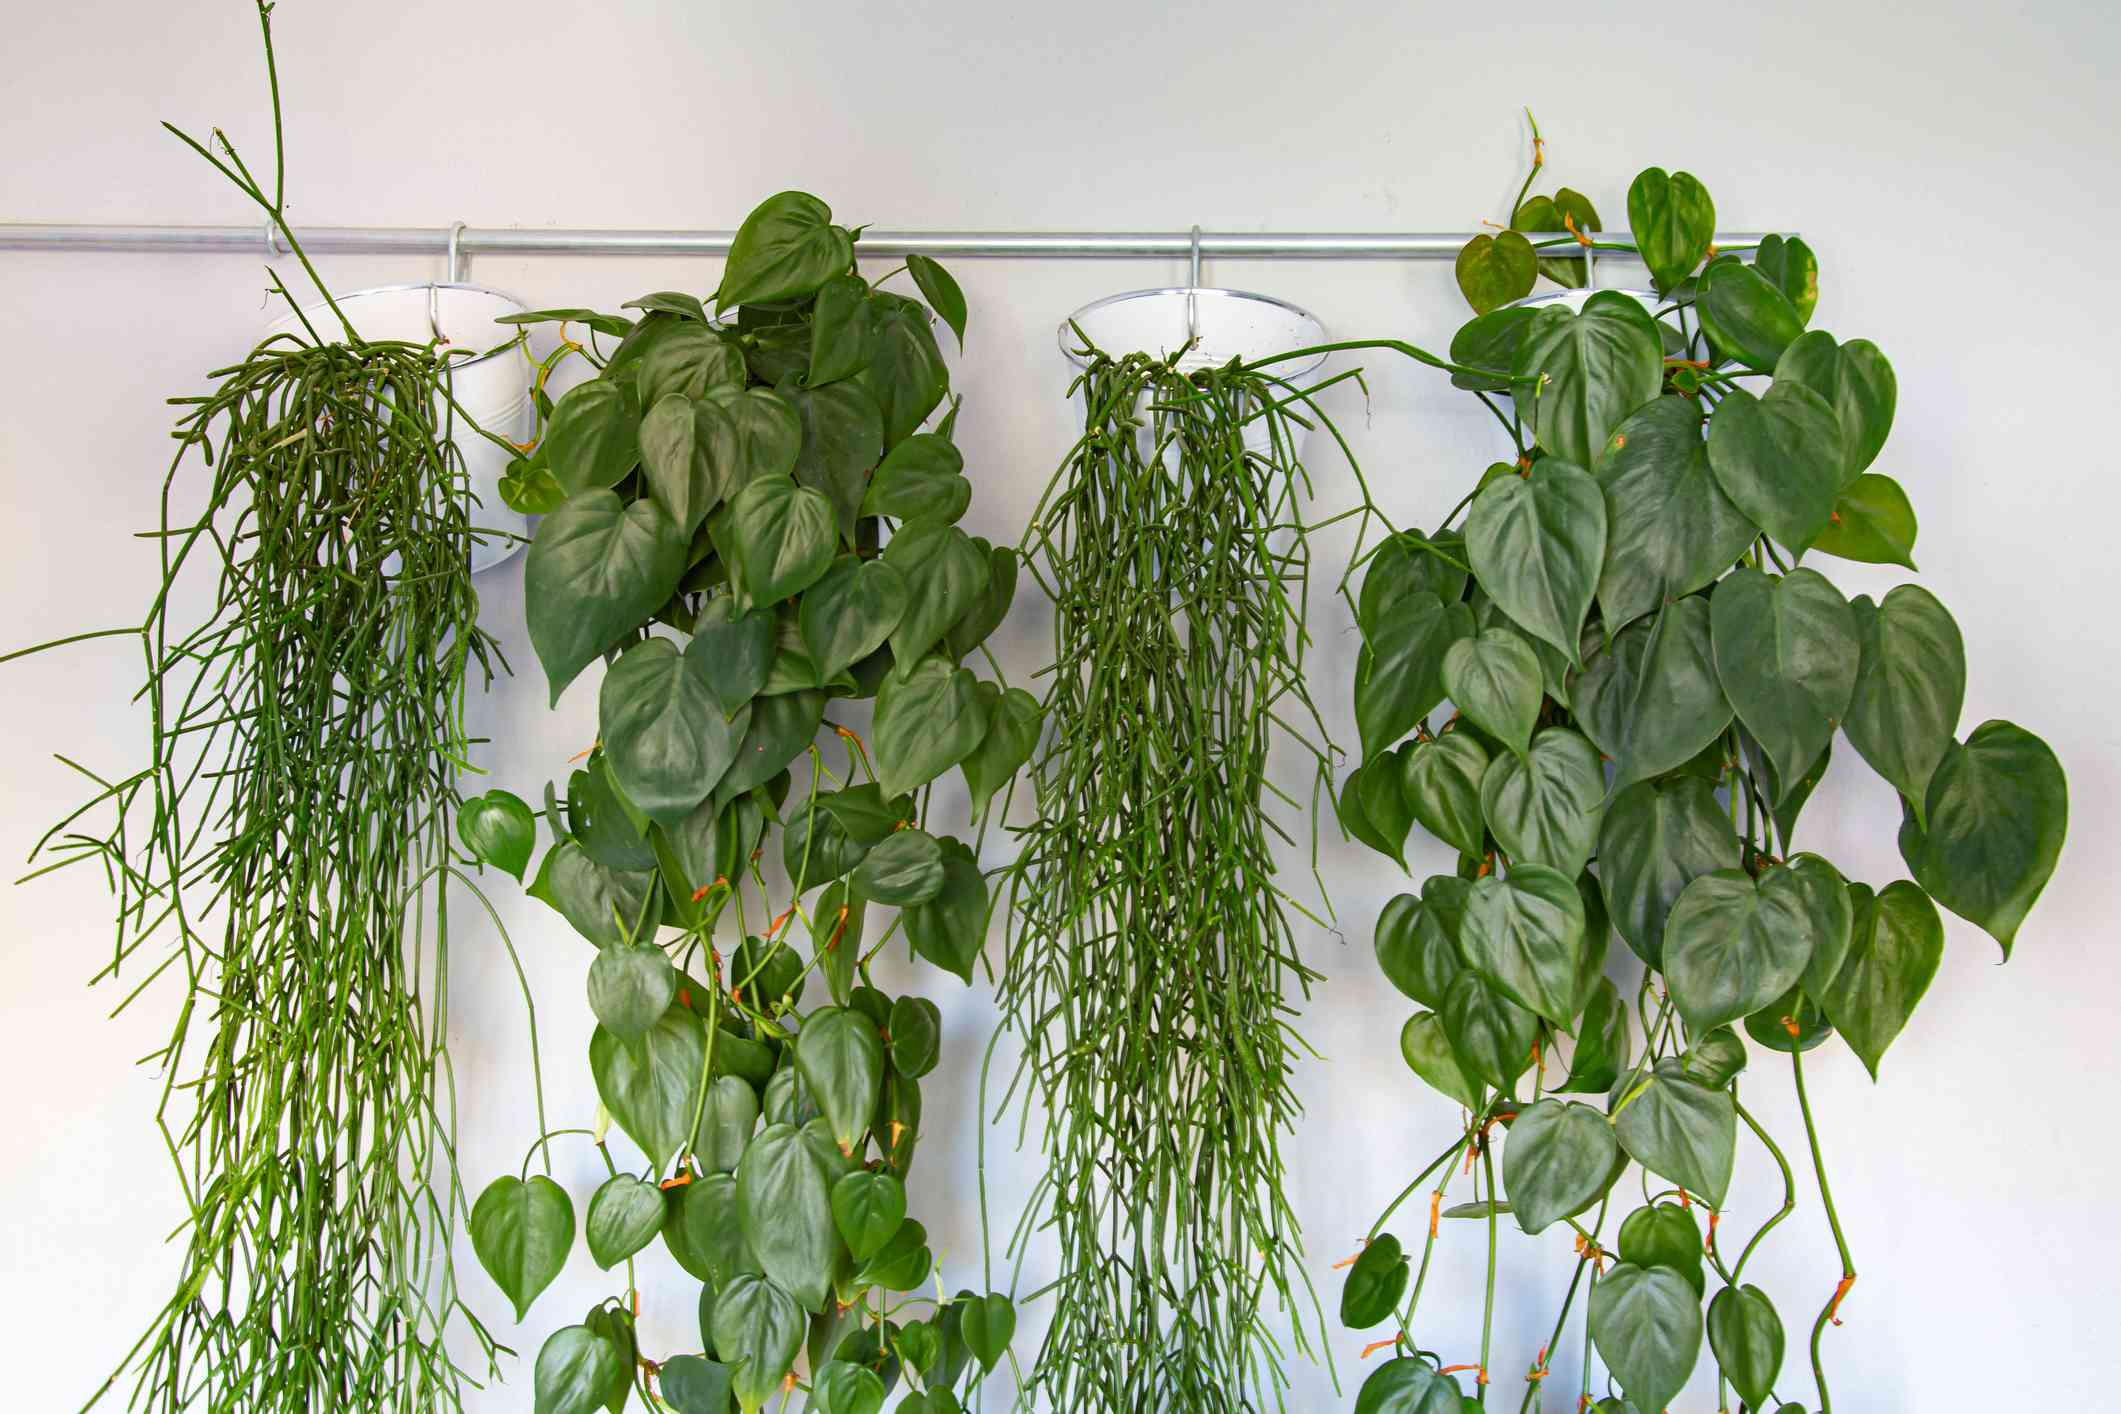 Collection of hanging green plants in white buckets hanging from a railing.